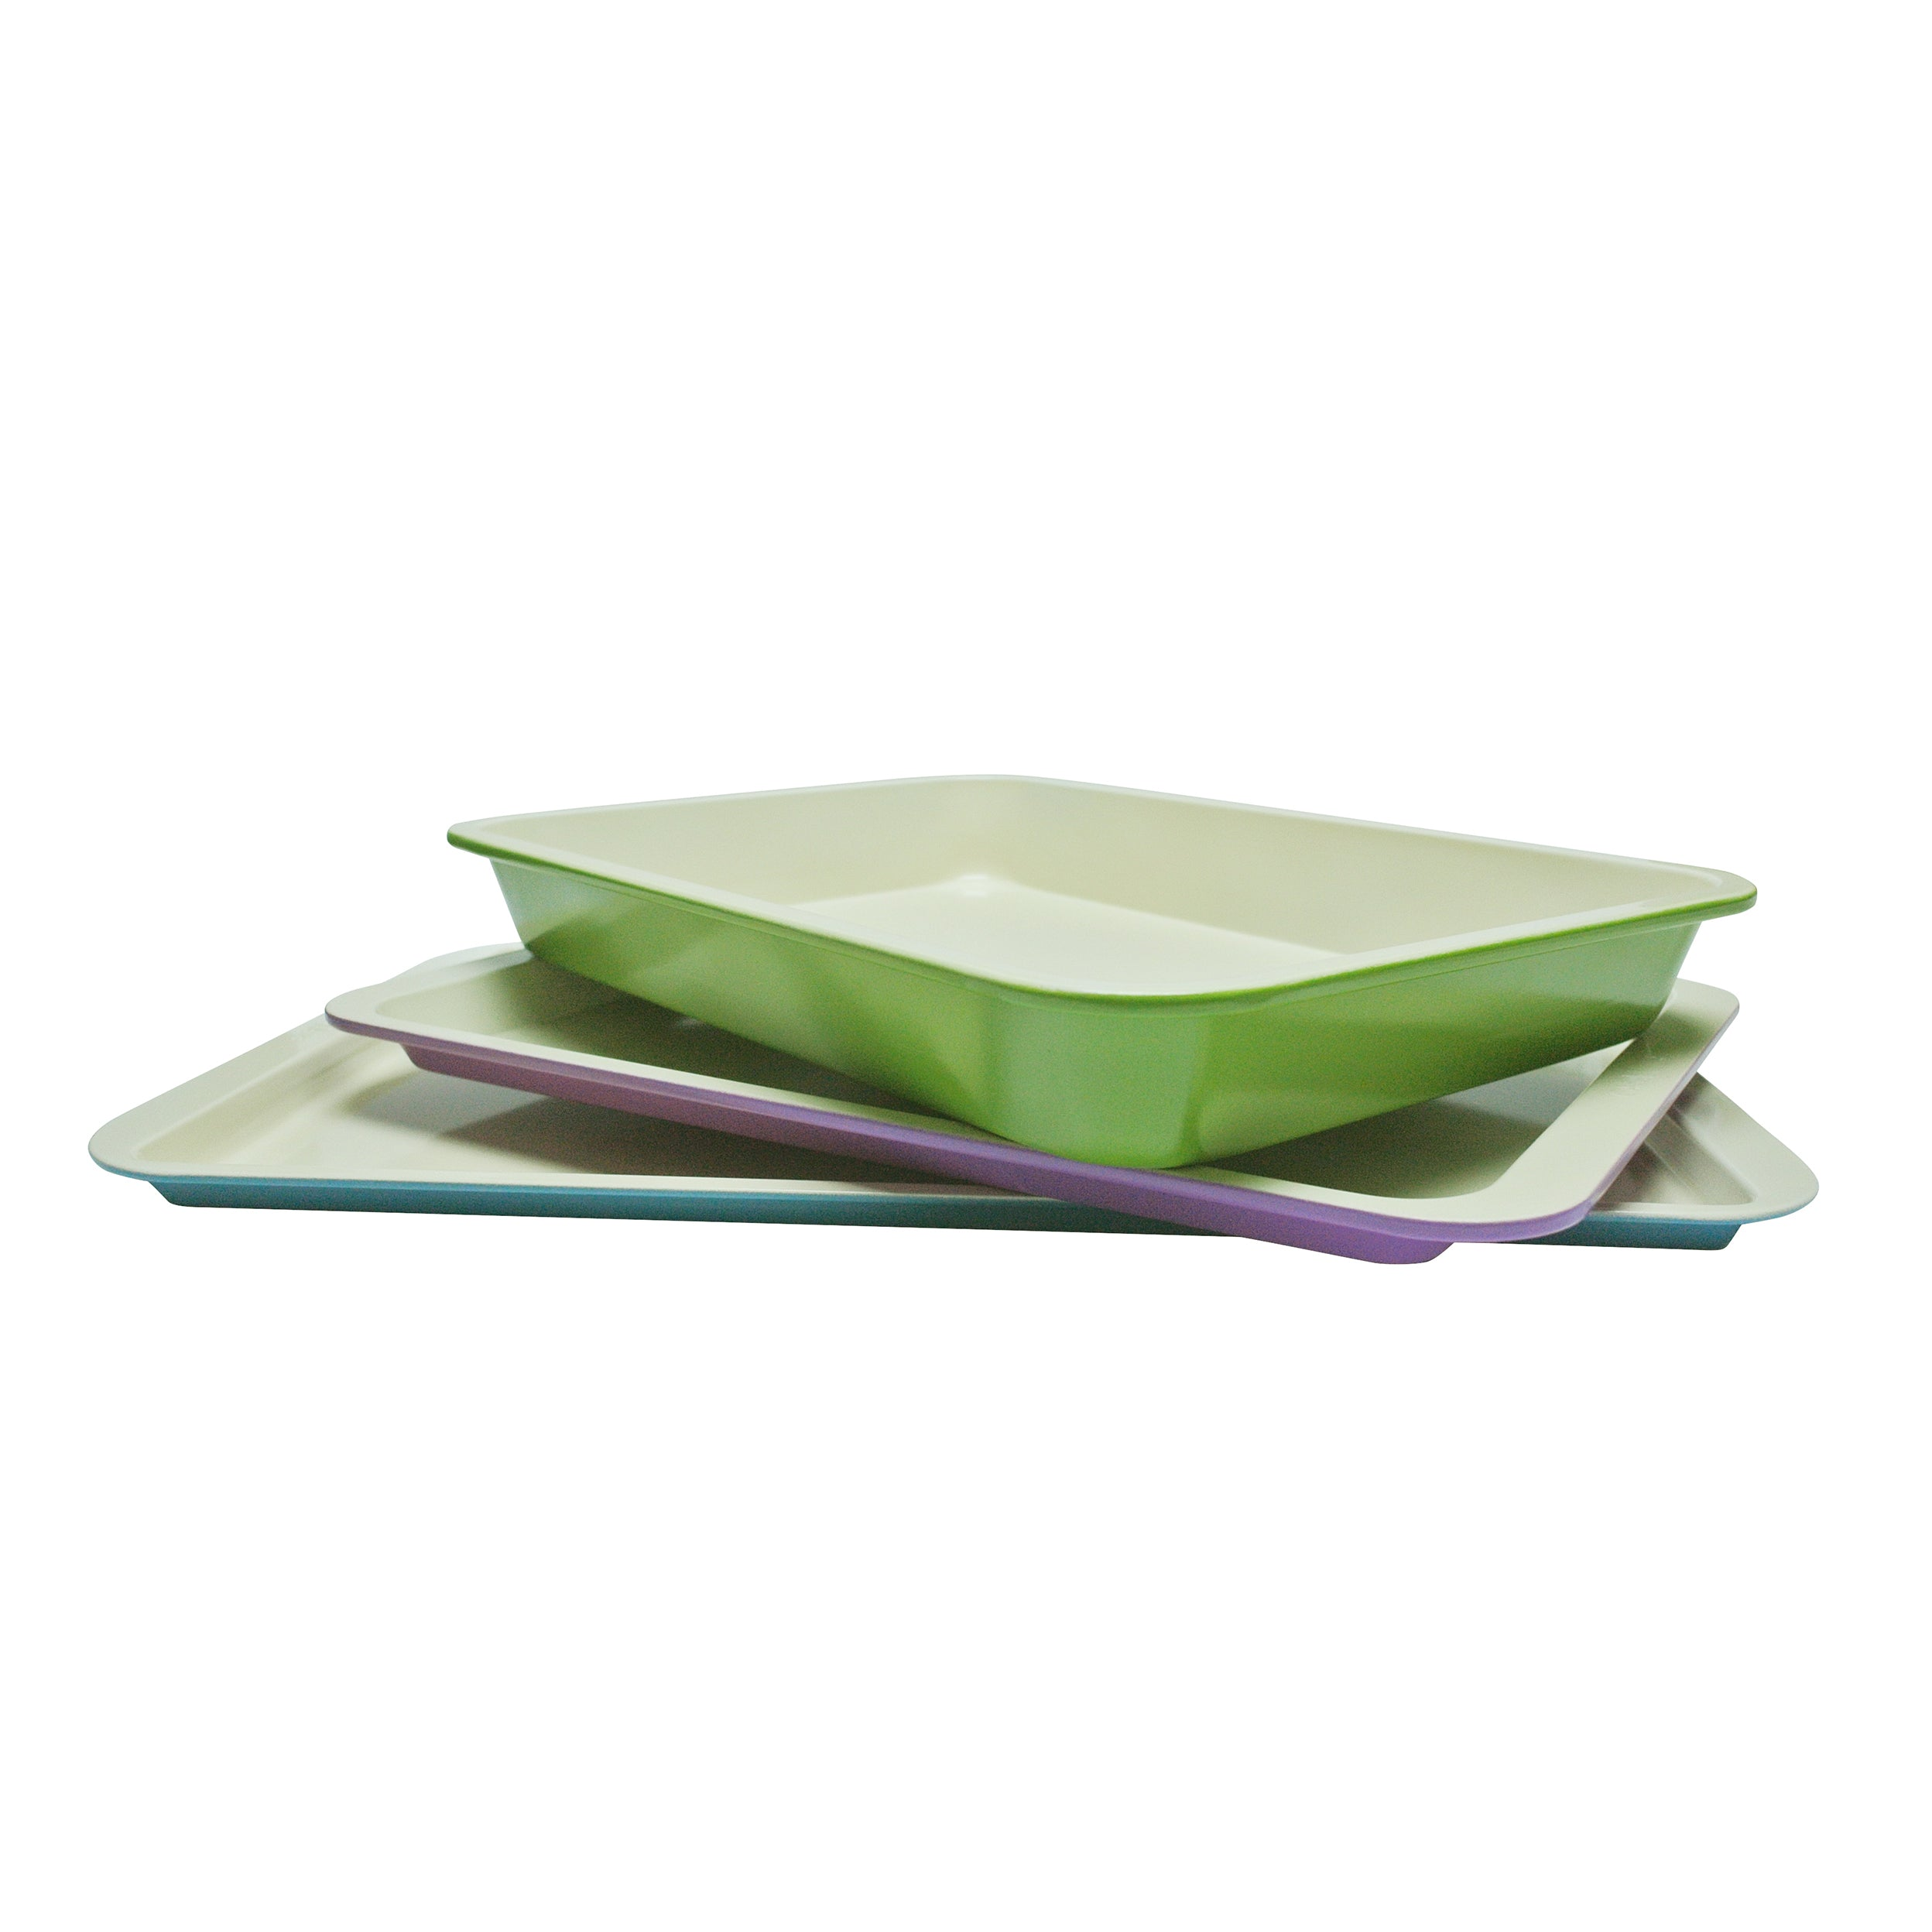 casaWare 3pc Ceramic Coated Multi-Color and Size Baking ...